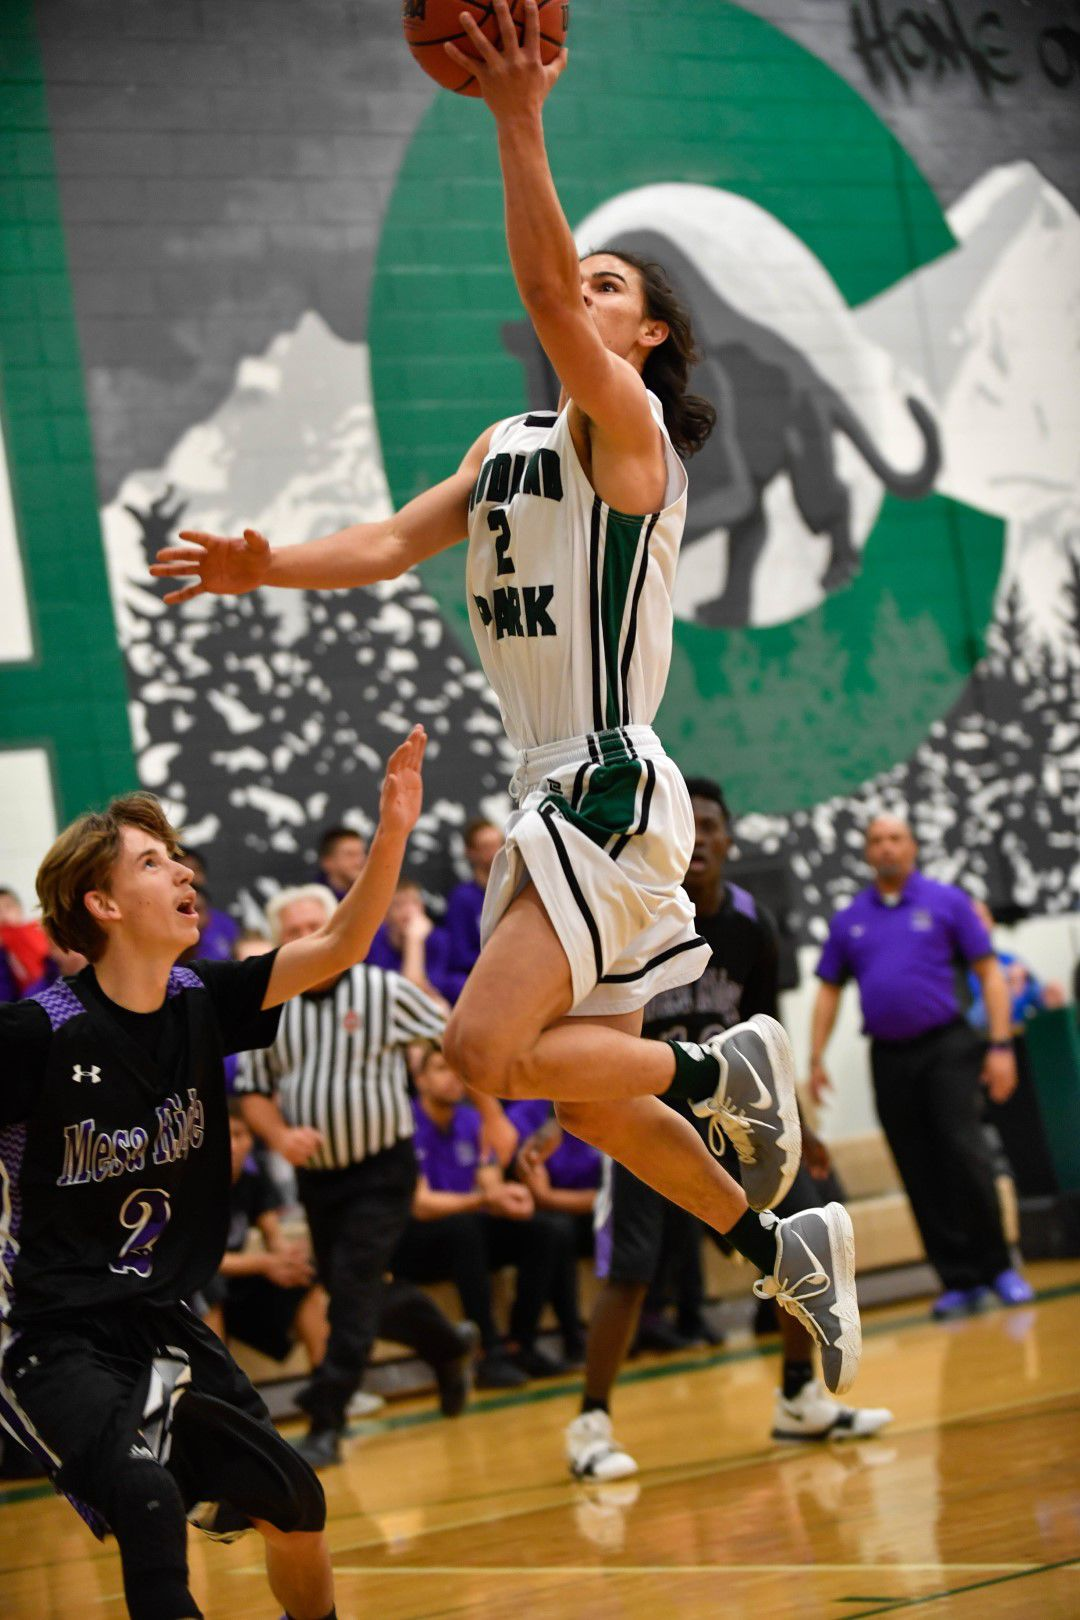 Skye Ciccarelli was a four-year starter in basketball for Woodland Park